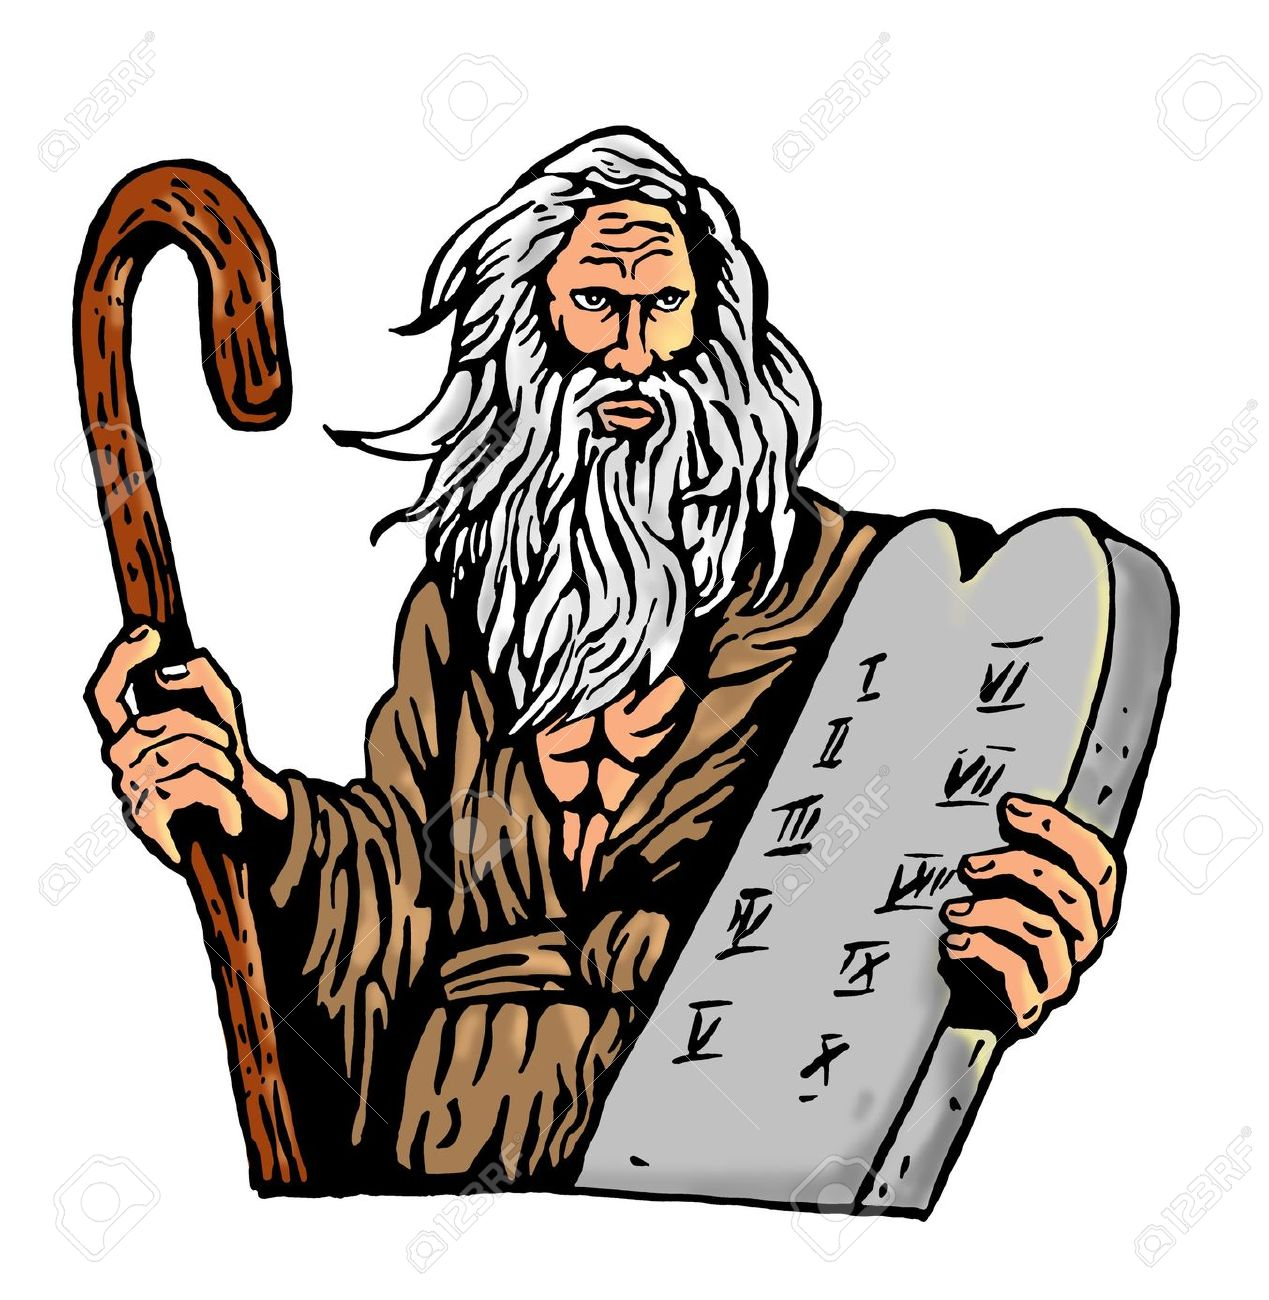 Ten commandments clipart 2 » Clipart Station.